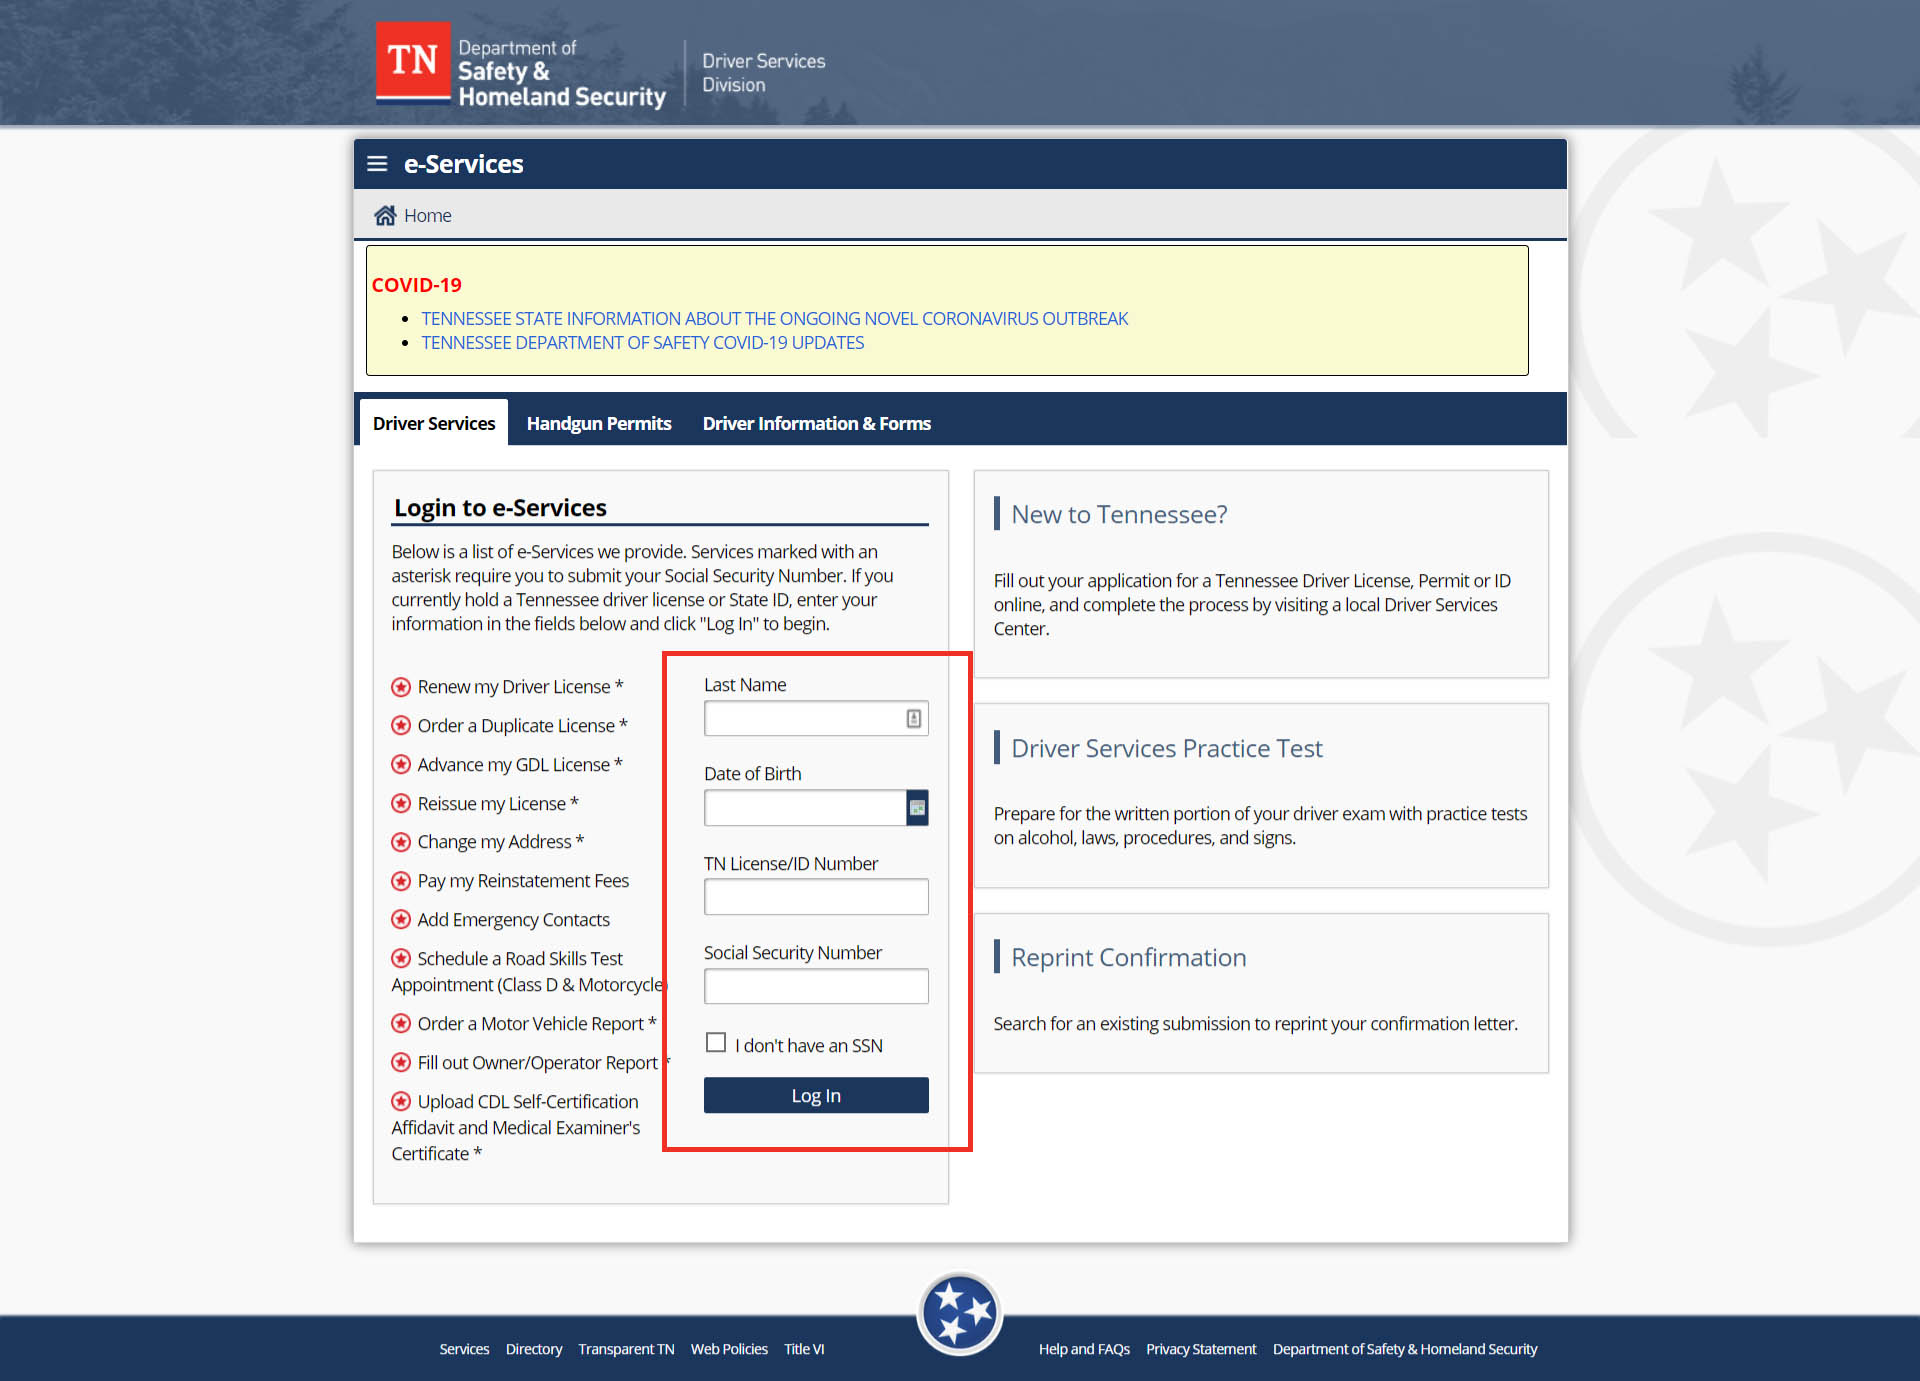 Fornt Pagee of TN Department of Safety & Homeland Security Website.